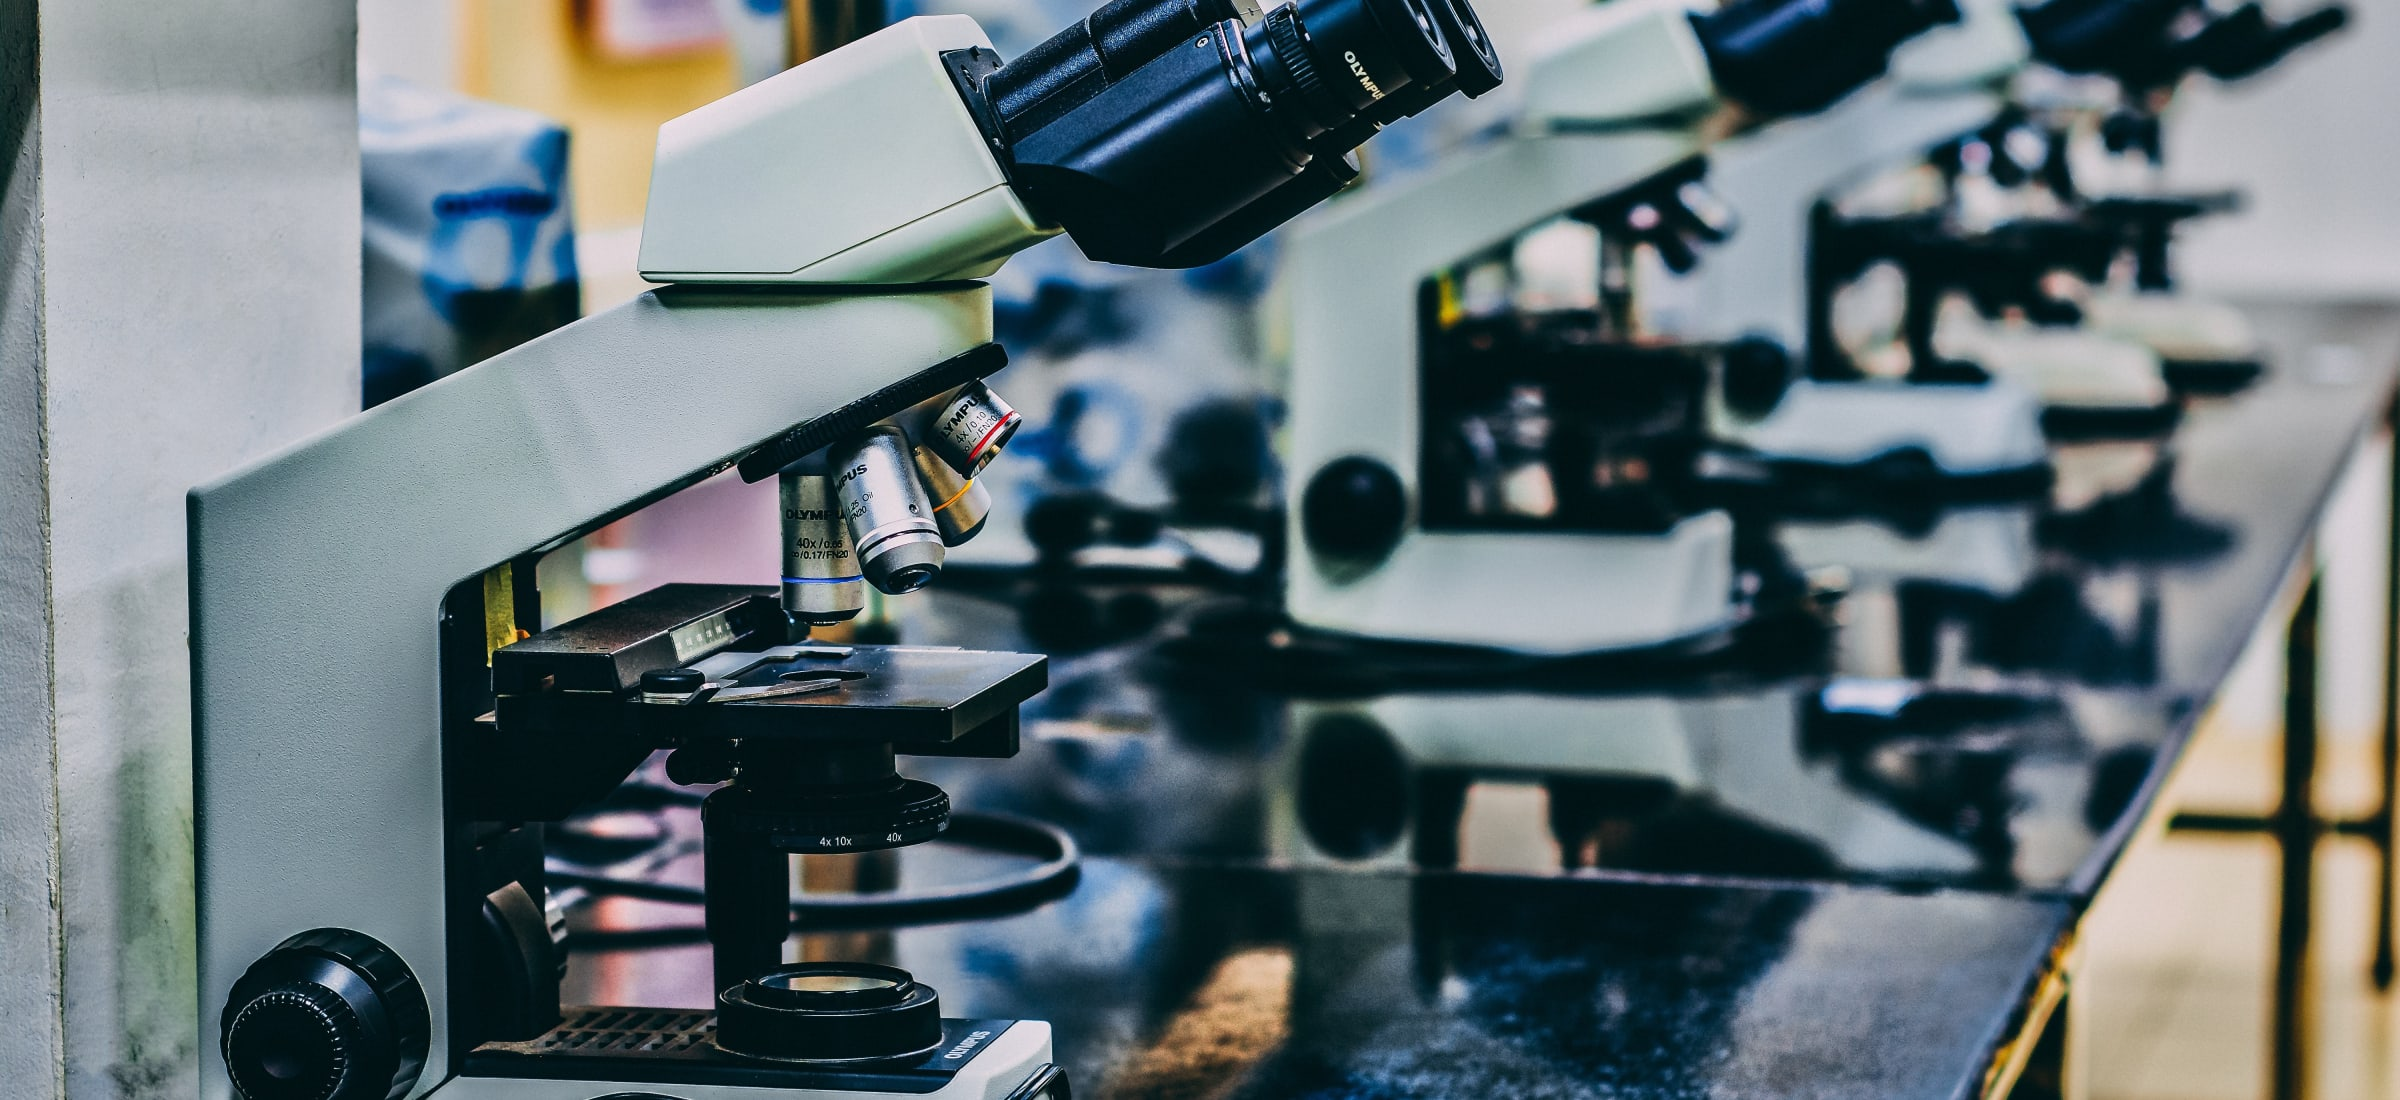 Microscopes in a line on a table